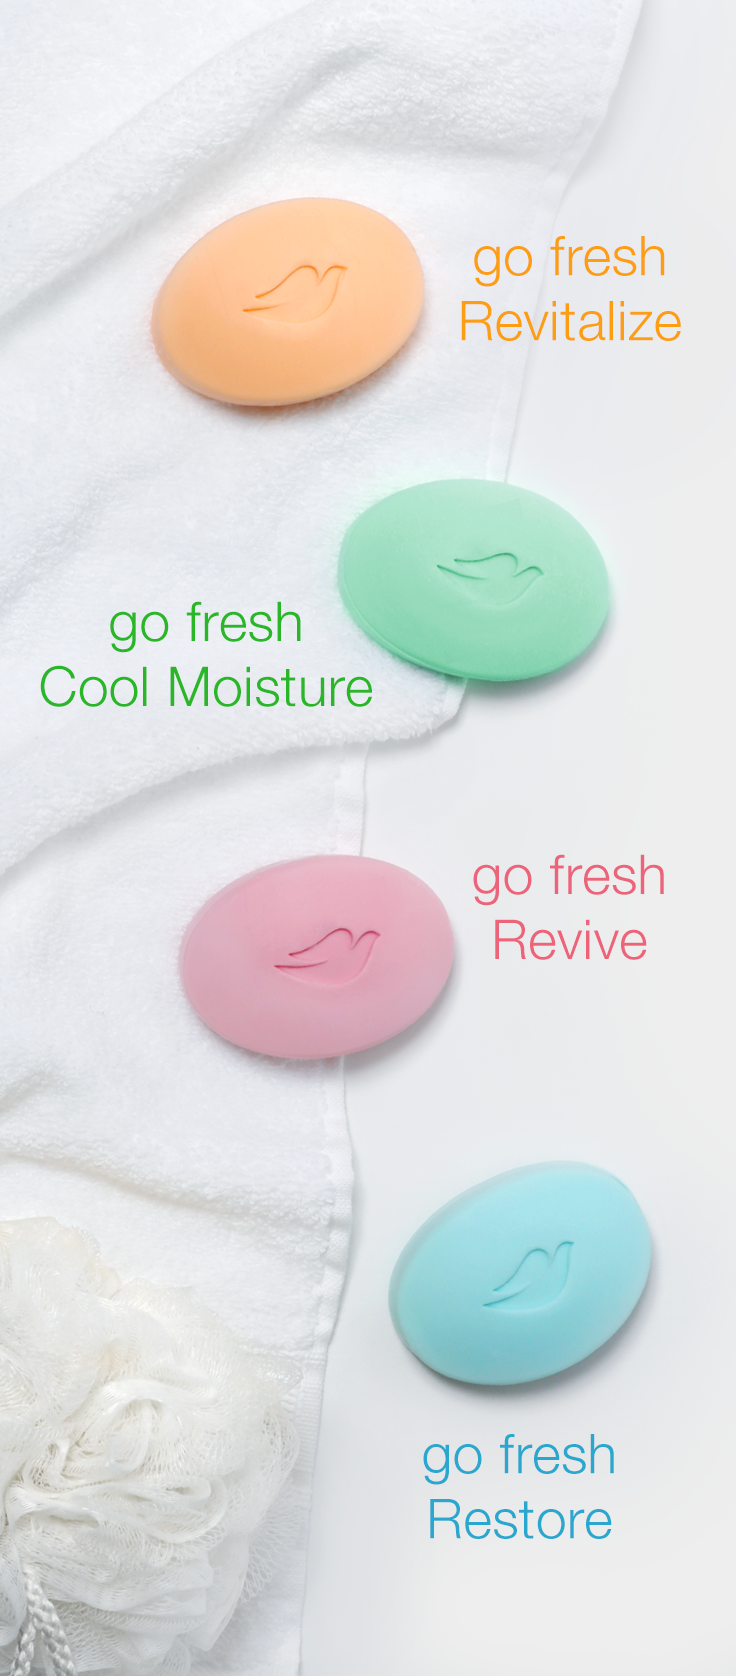 Dove Go Fresh Beauty Bars Come In Four Scents That Leave